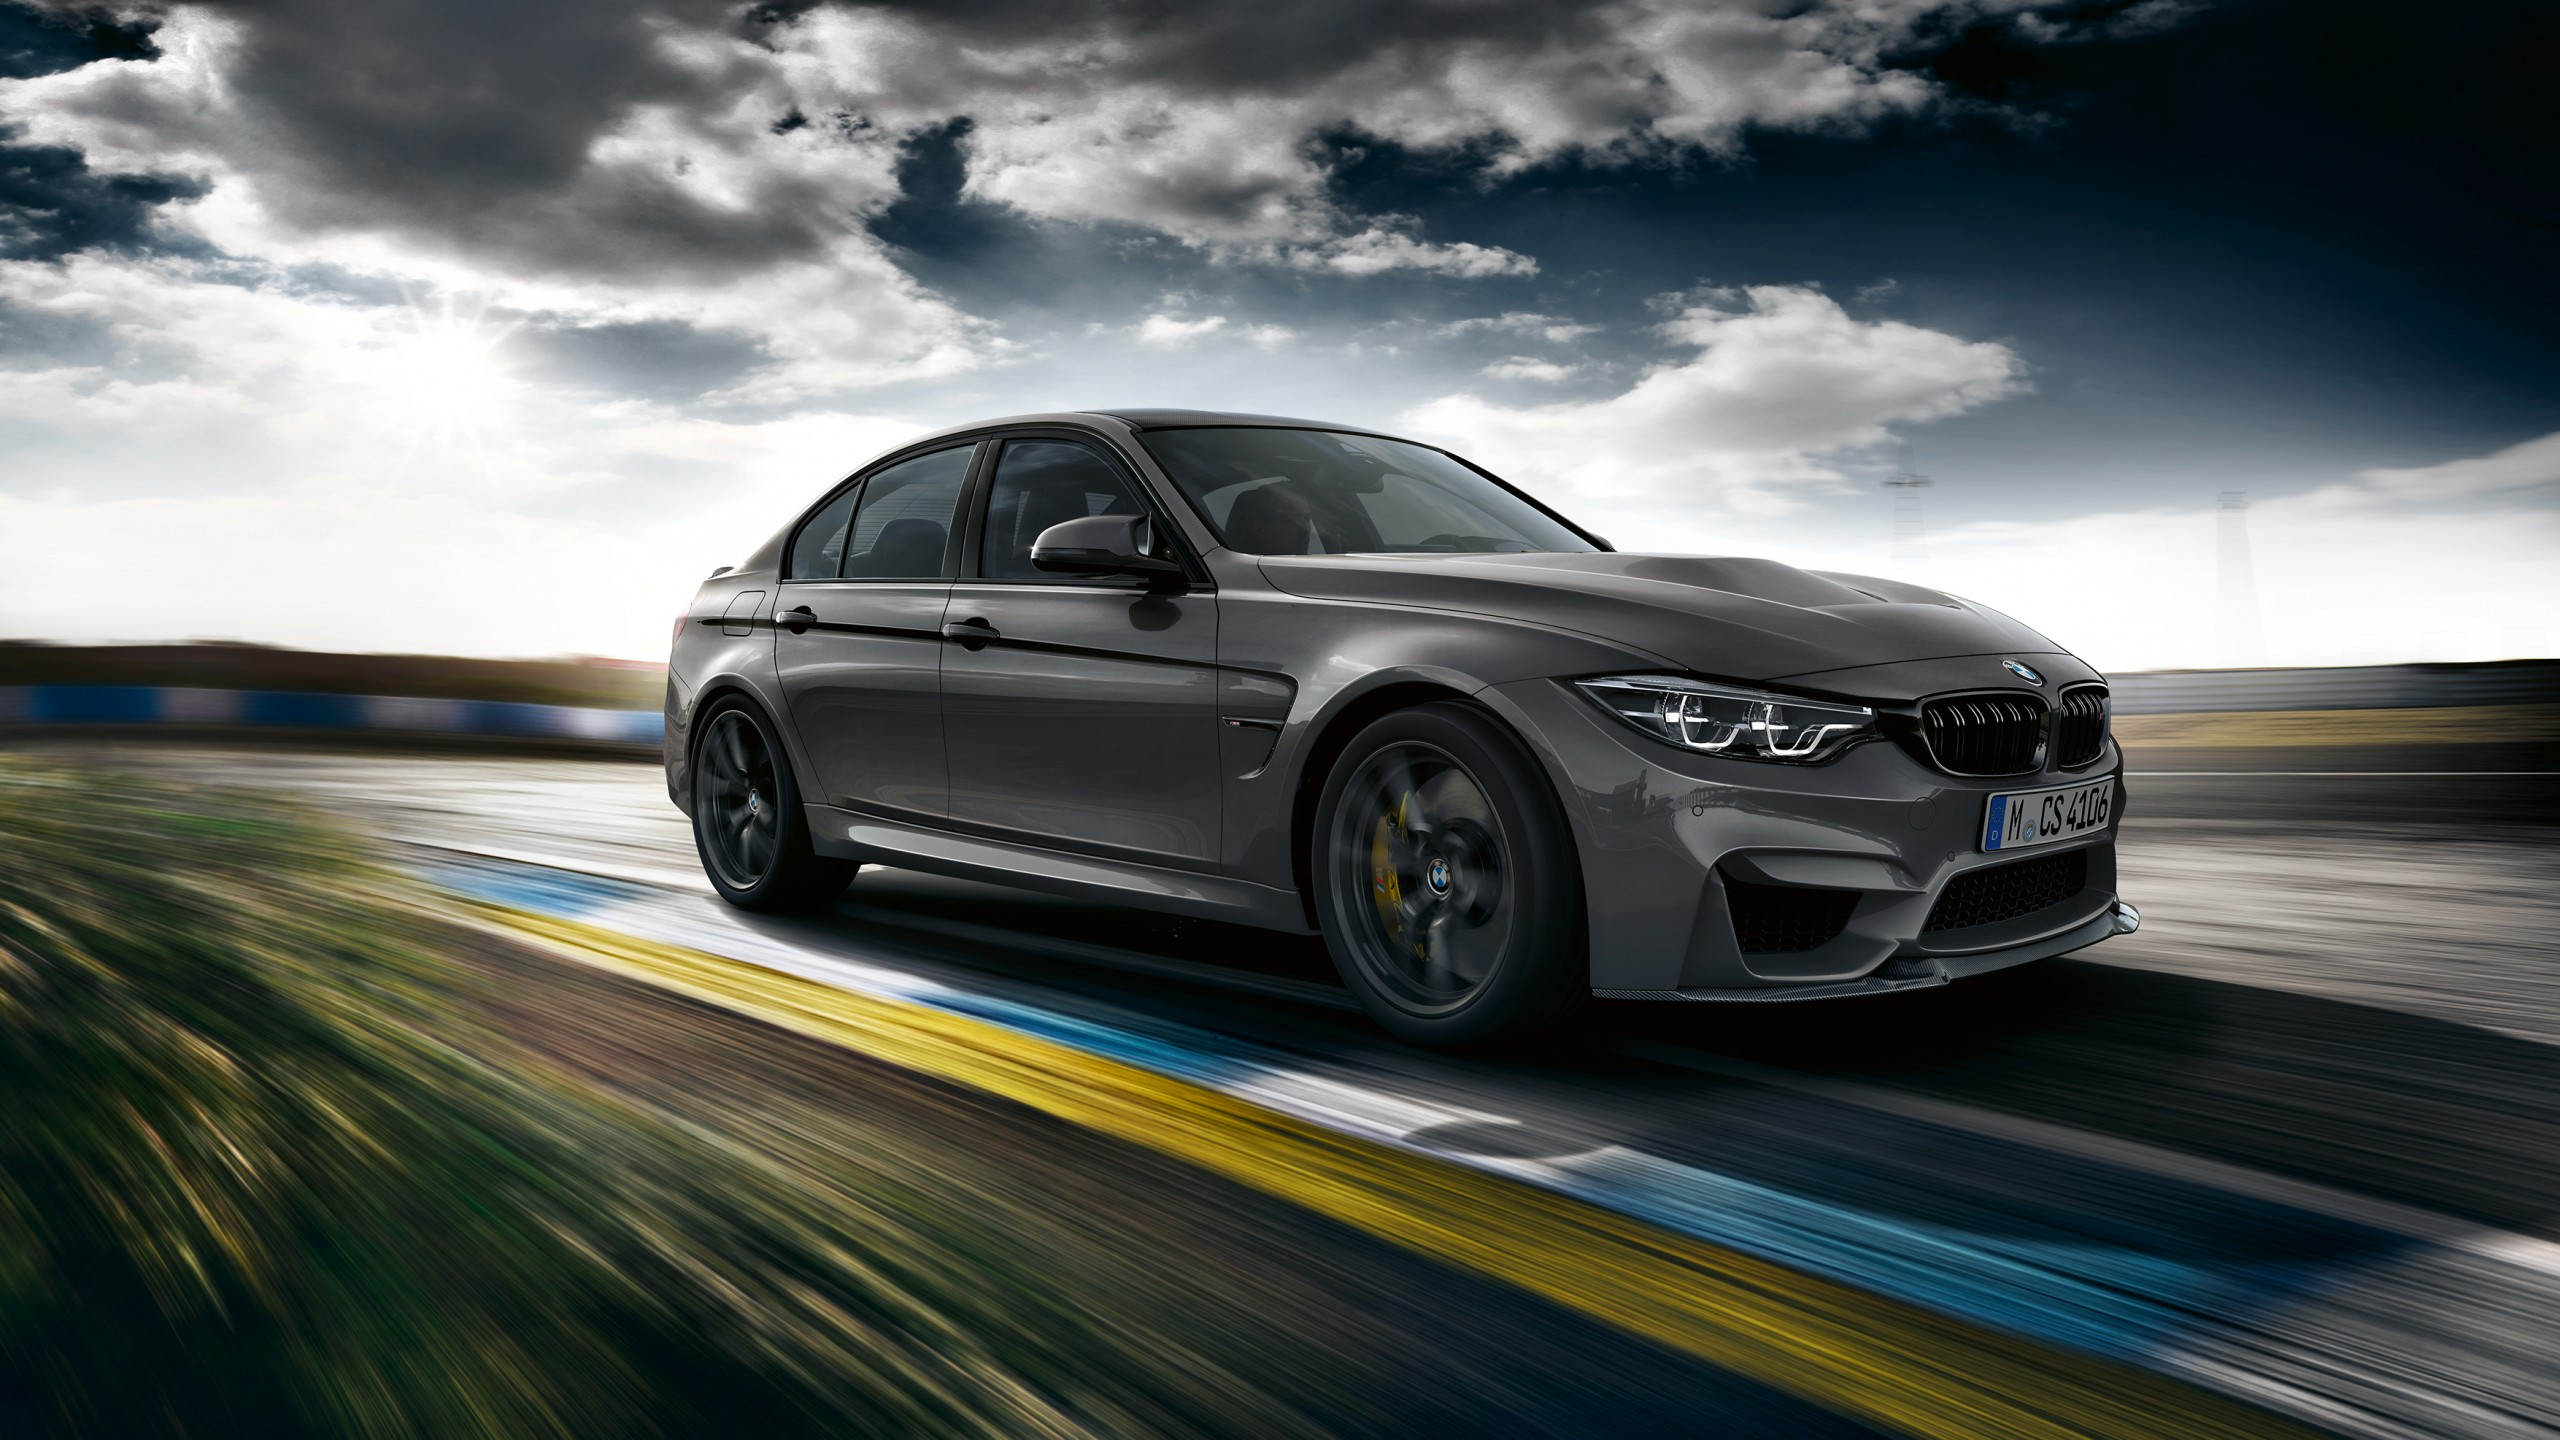 2018 BMW M3 CS Wallpaper | HD Car Wallpapers | ID #9027